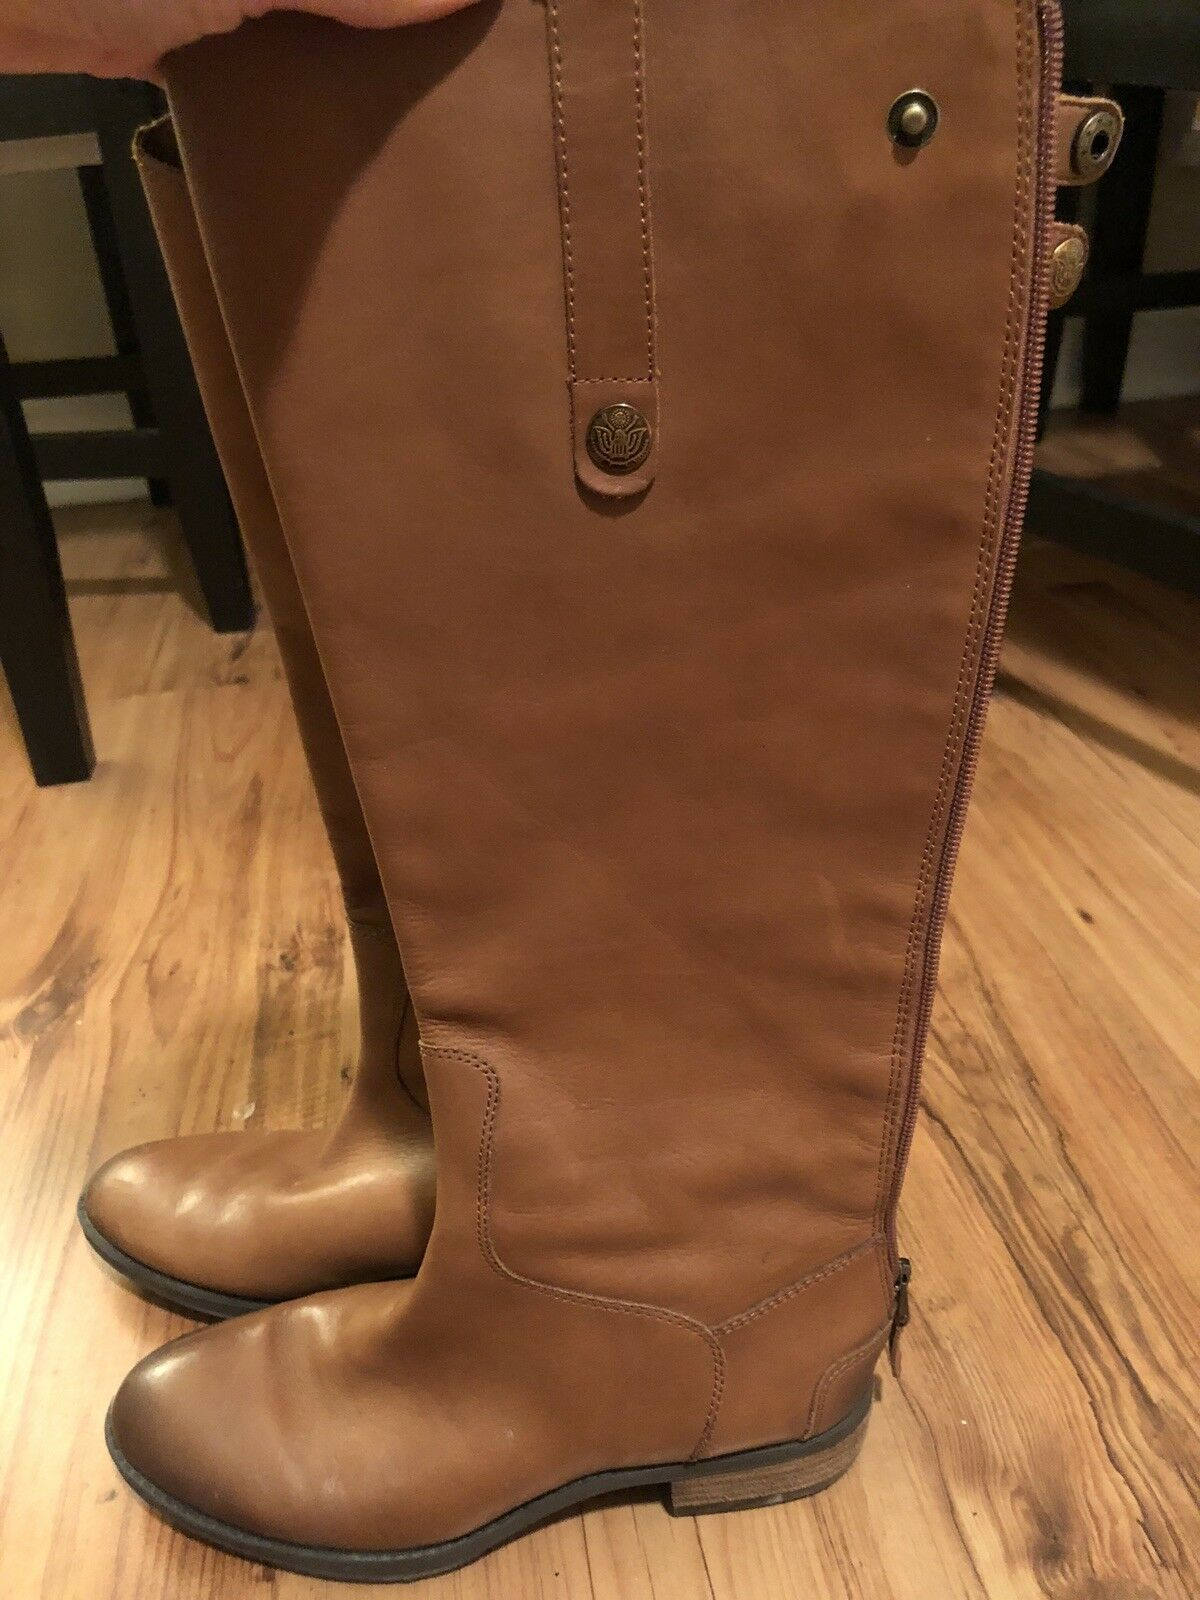 Women's Sam Edelman Penny Leather Riding Boots Brown Size 6 M